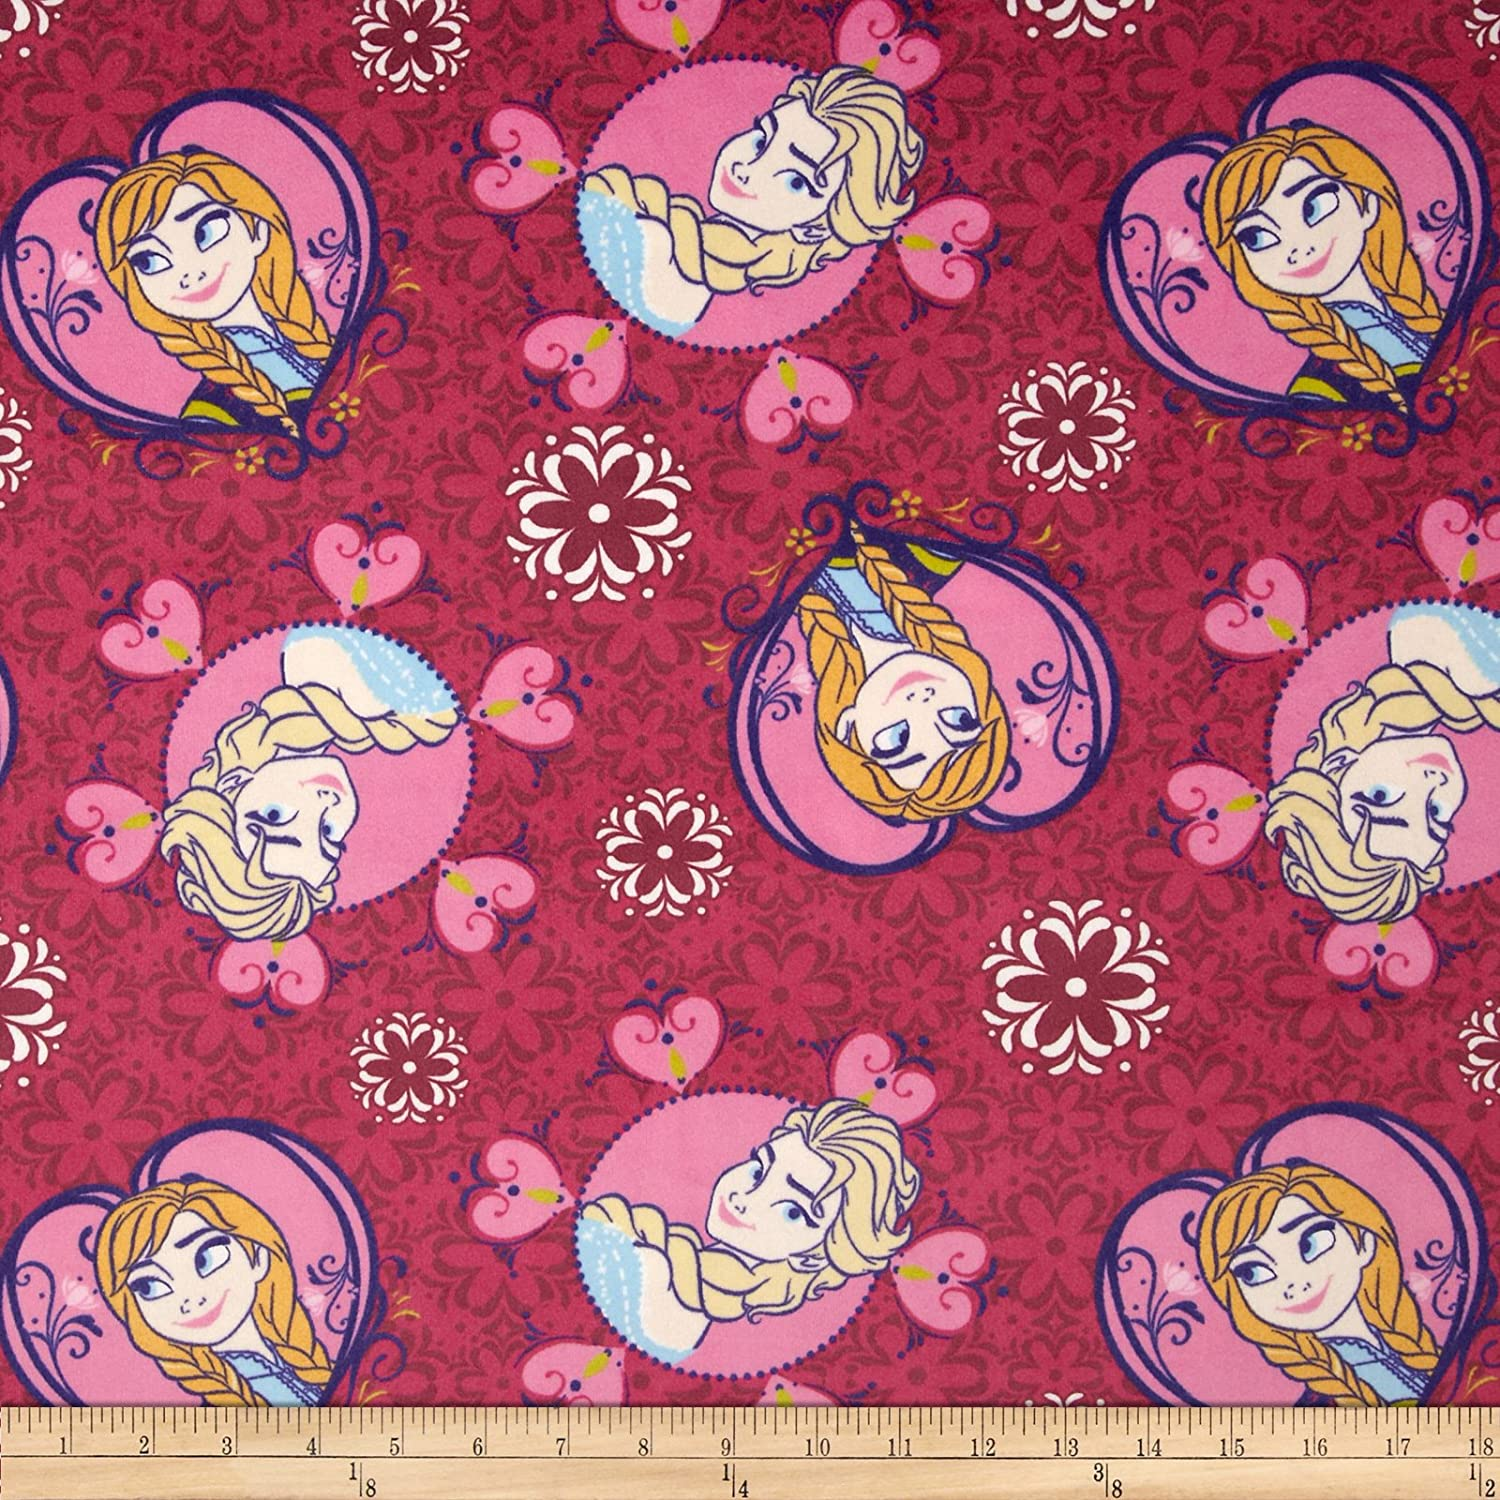 Disney Frozen Minky Velour Sisters Framed Toss Pink Fabric by The Yard